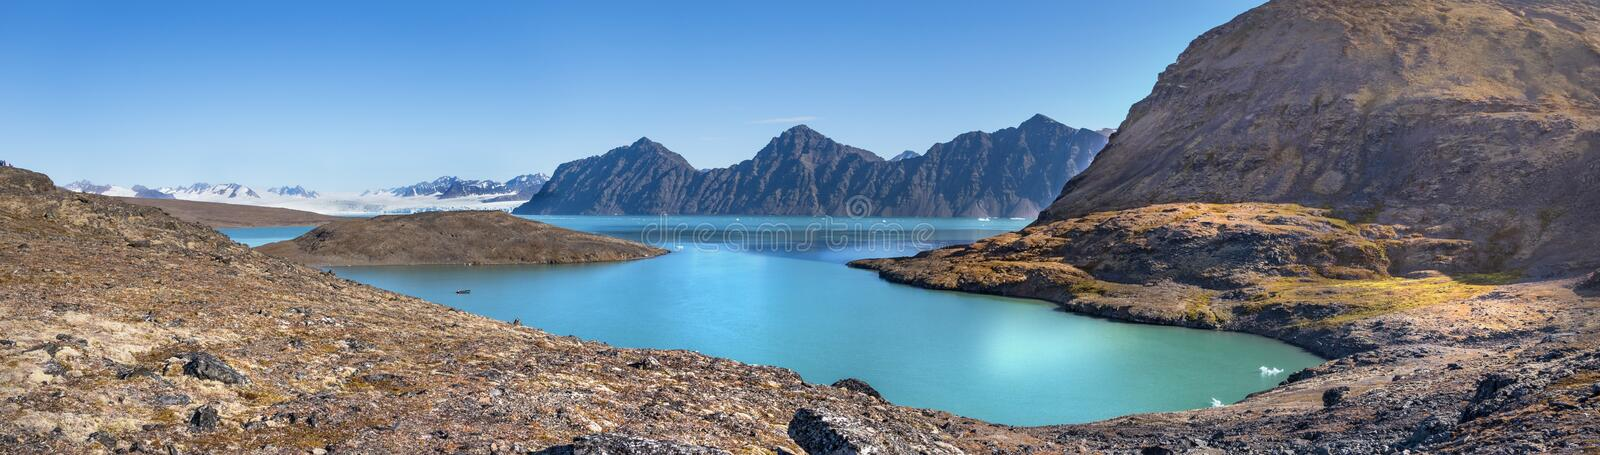 Signehamna bay, Nordvest-Spitsbergen National Park, Svalbard, Norway. View of the Signehamna, a natural bay and harbor in Albert I Land at Spitsbergen, Svalbard royalty free stock images